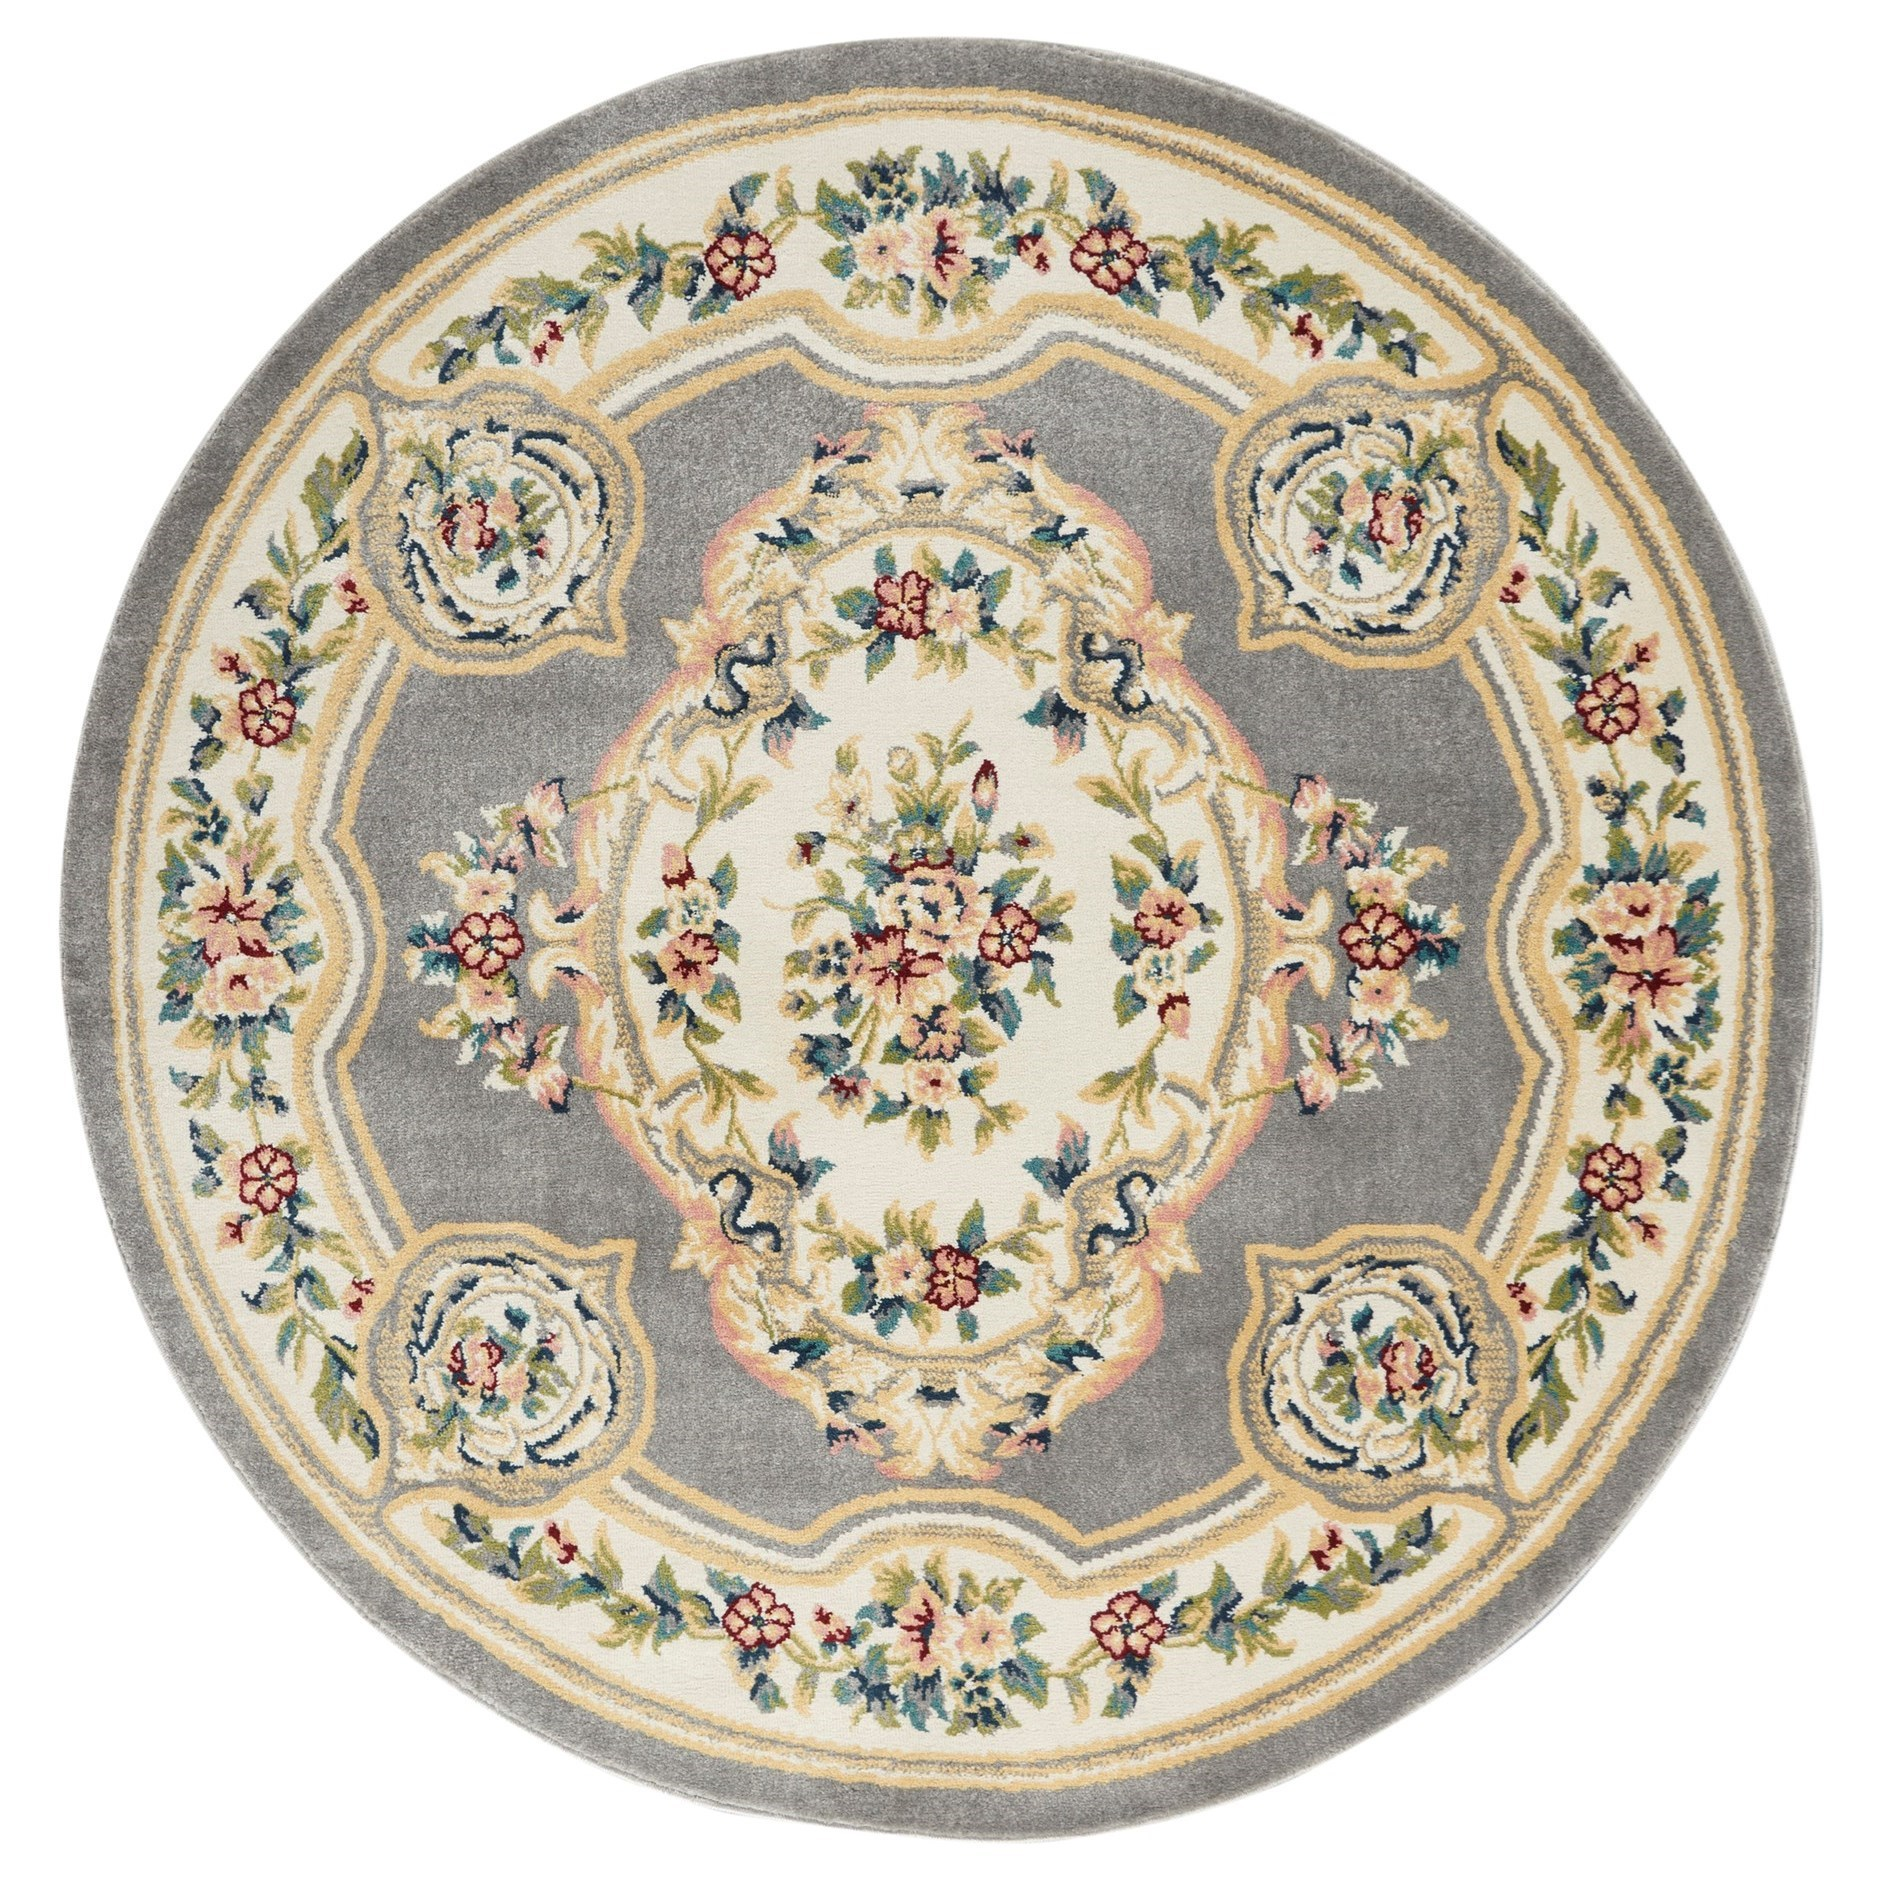 Aubusson 2020 5' Round Rug by Nourison at Home Collections Furniture